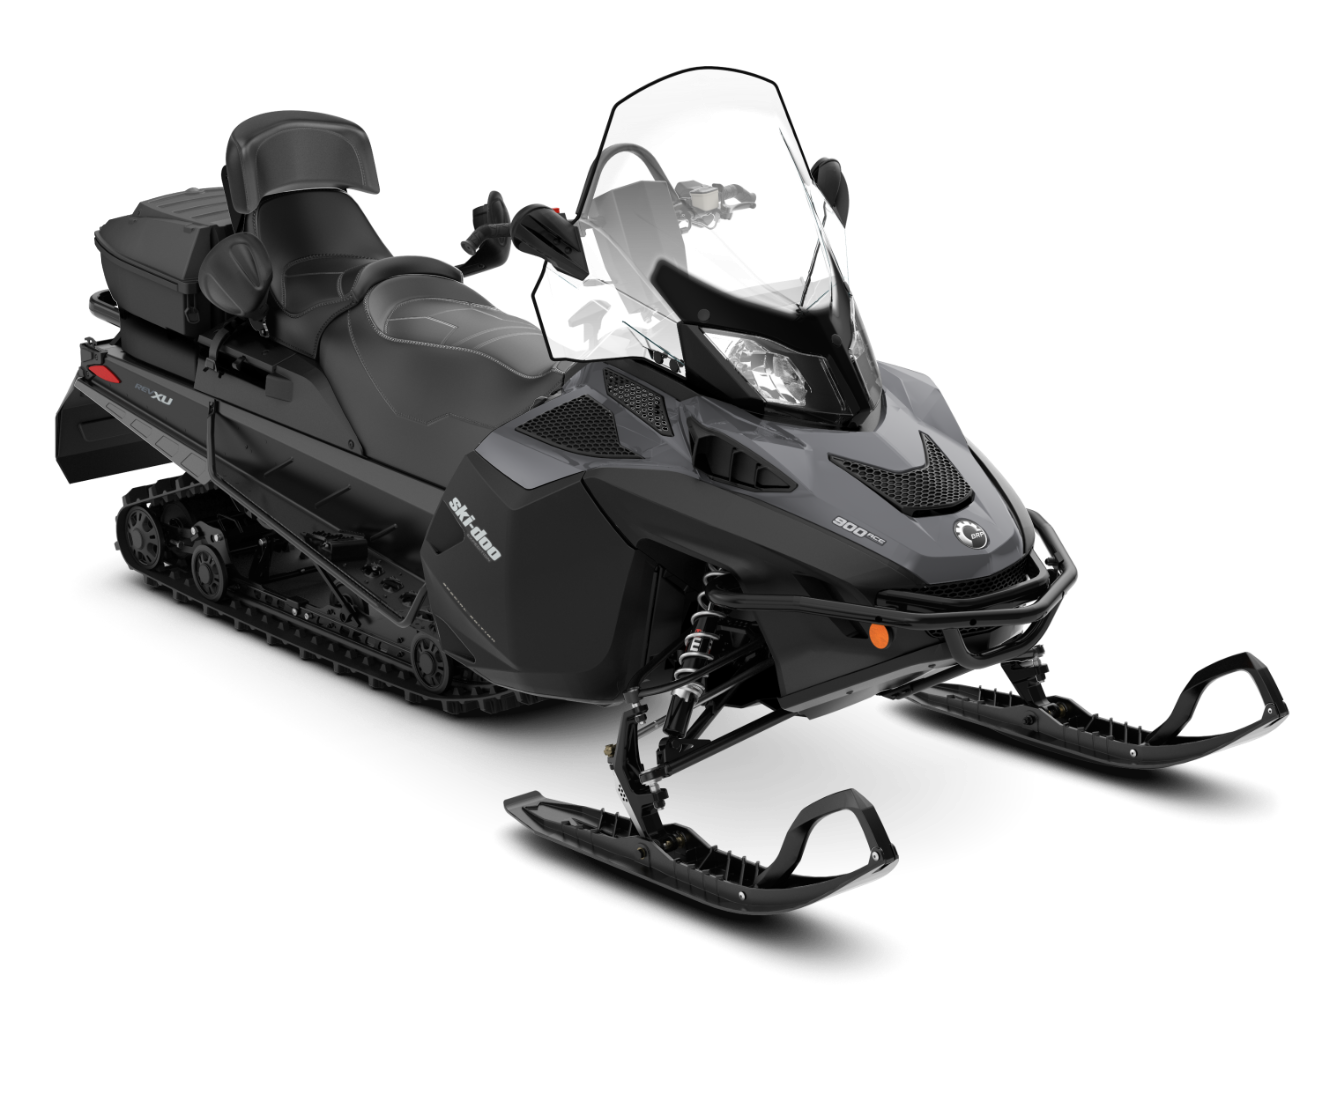 2018 Ski-Doo Expedition SE 900 ACE in Clinton Township, Michigan